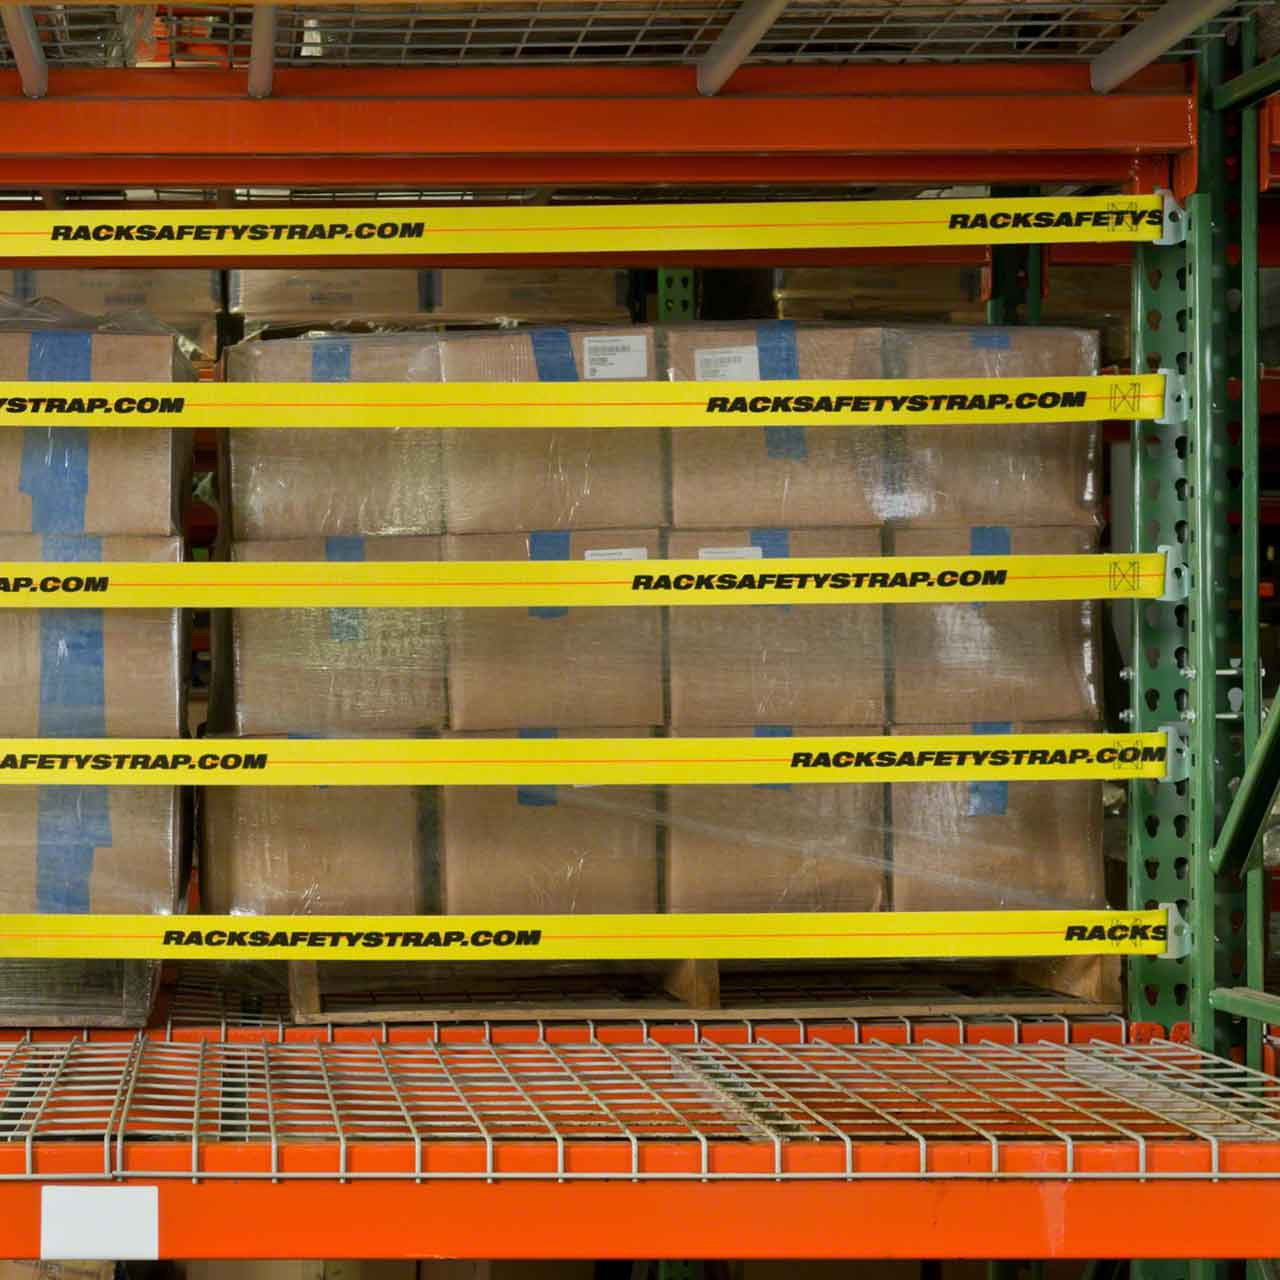 If desired, even 5 pallet rack safety straps can be used to secure your rack